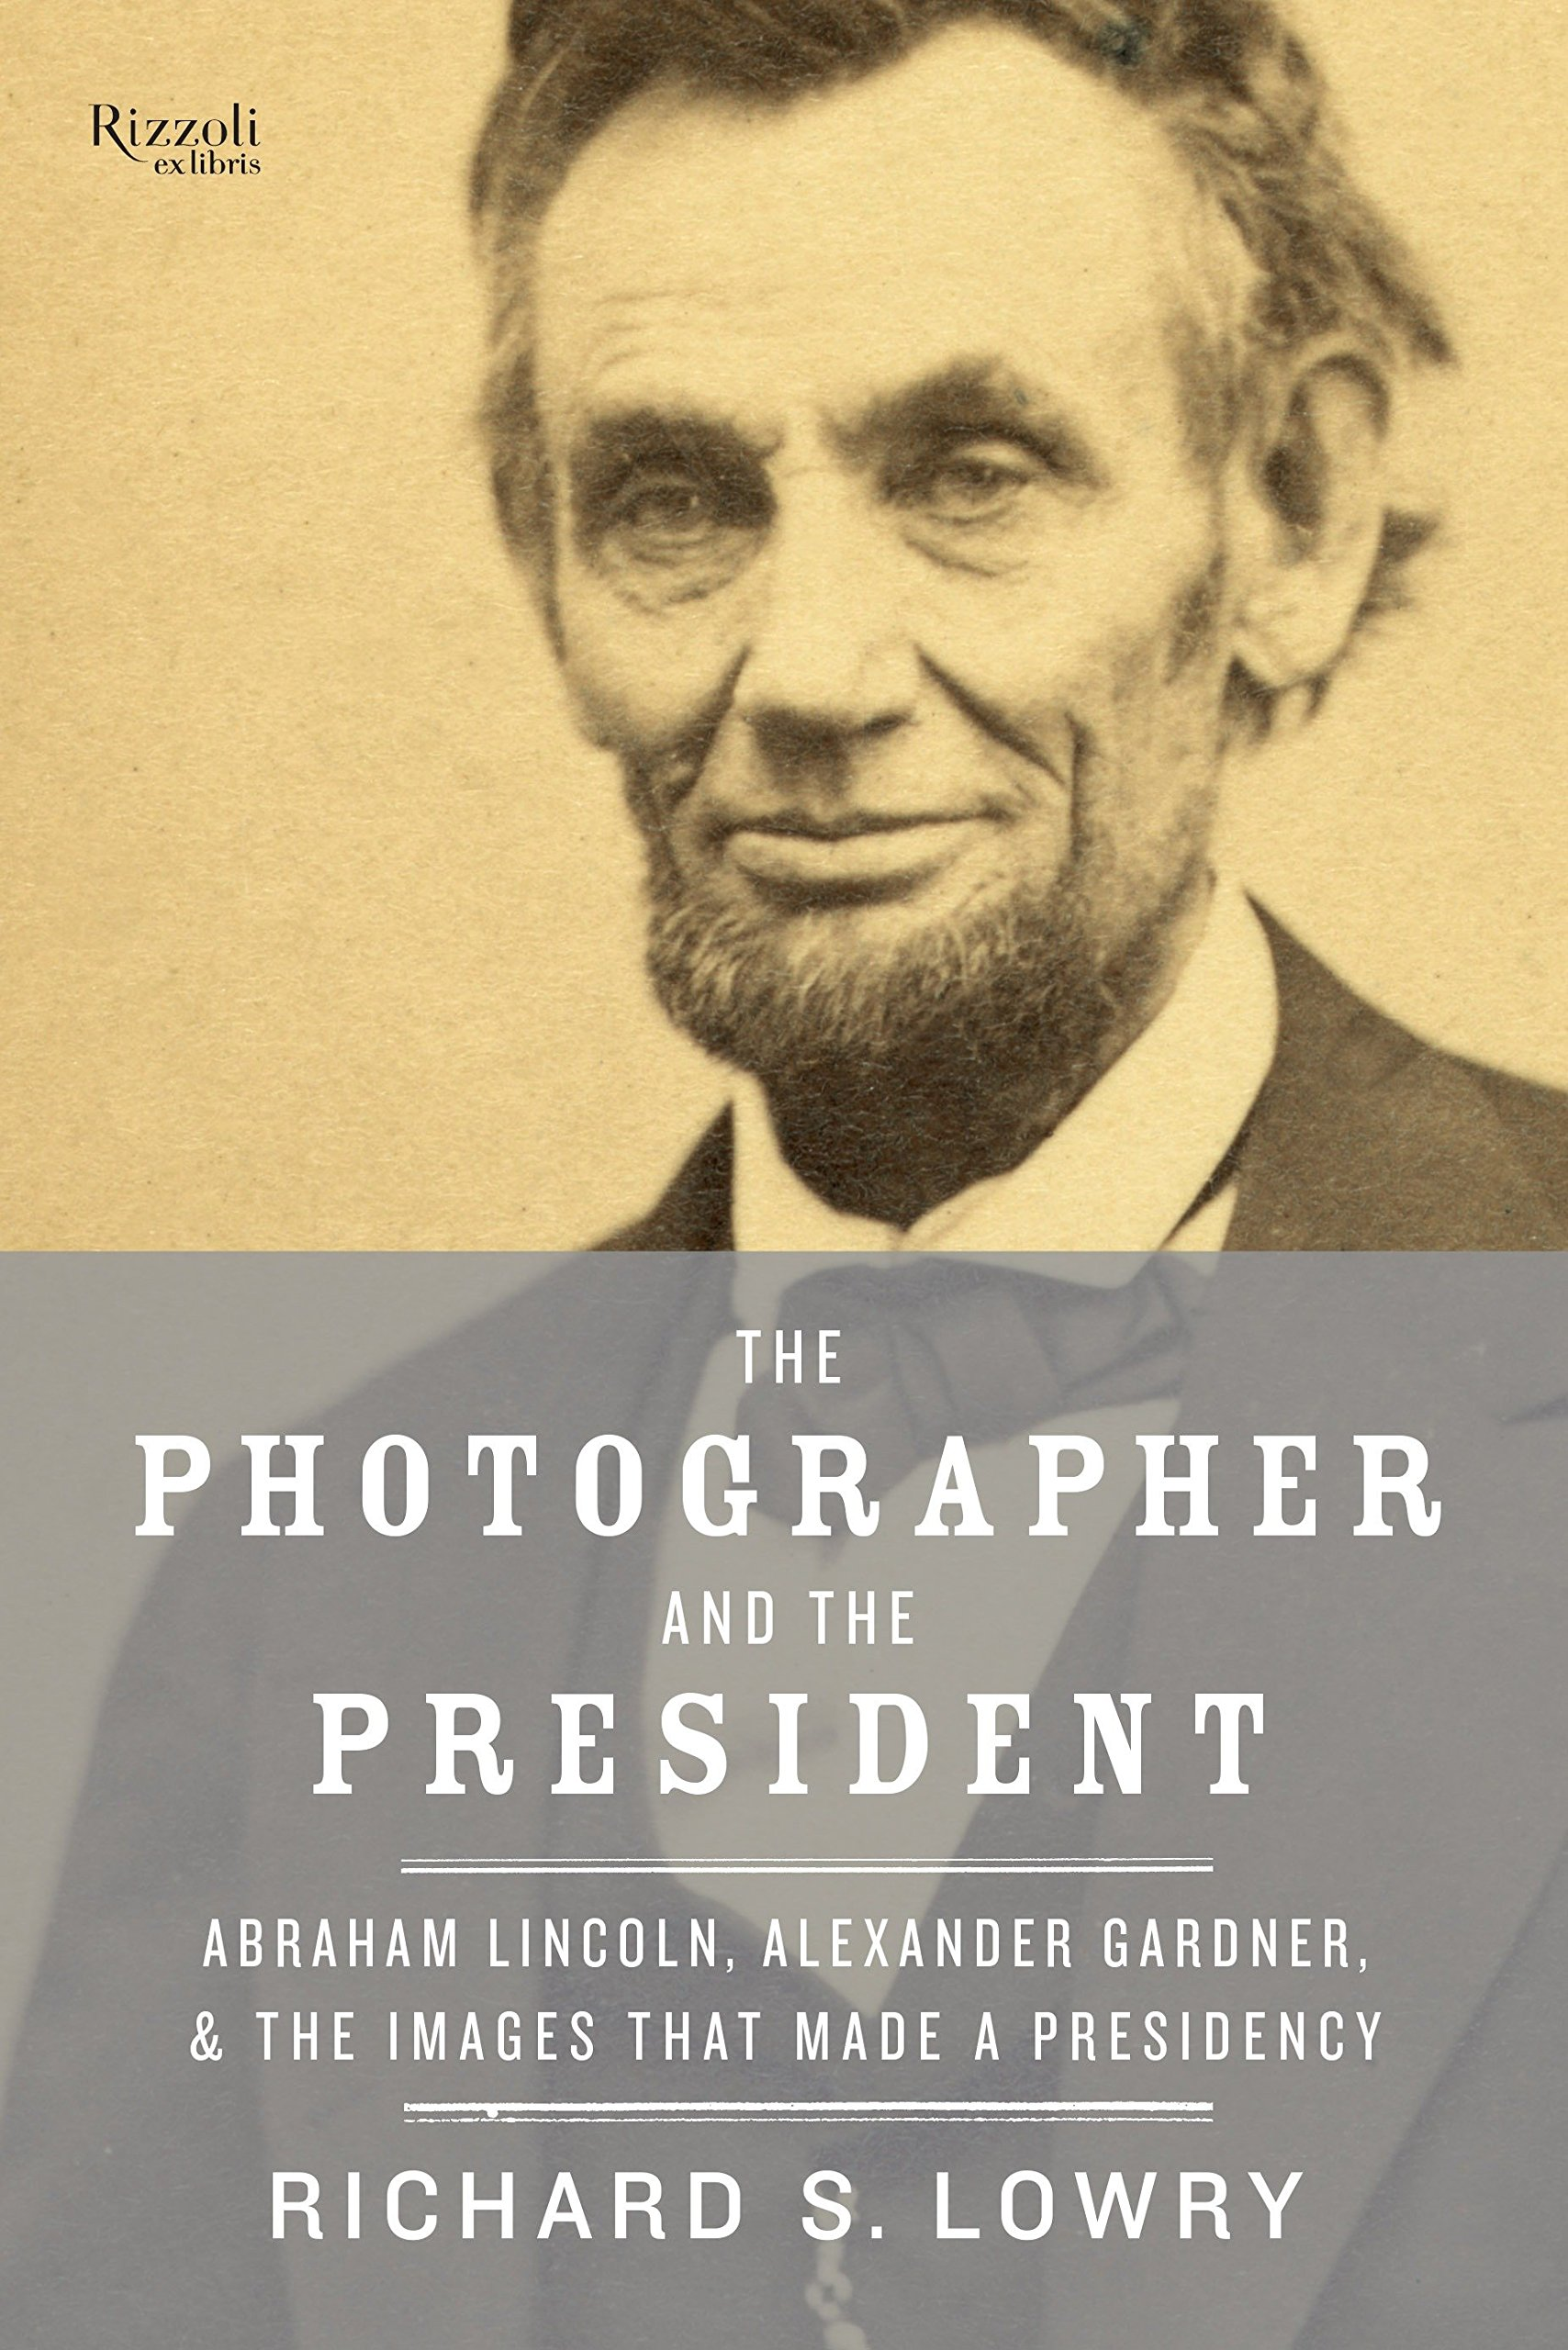 Read Online The Photographer and the President: Abraham Lincoln, Alexander Gardner, and the Images that Made a Presidency PDF